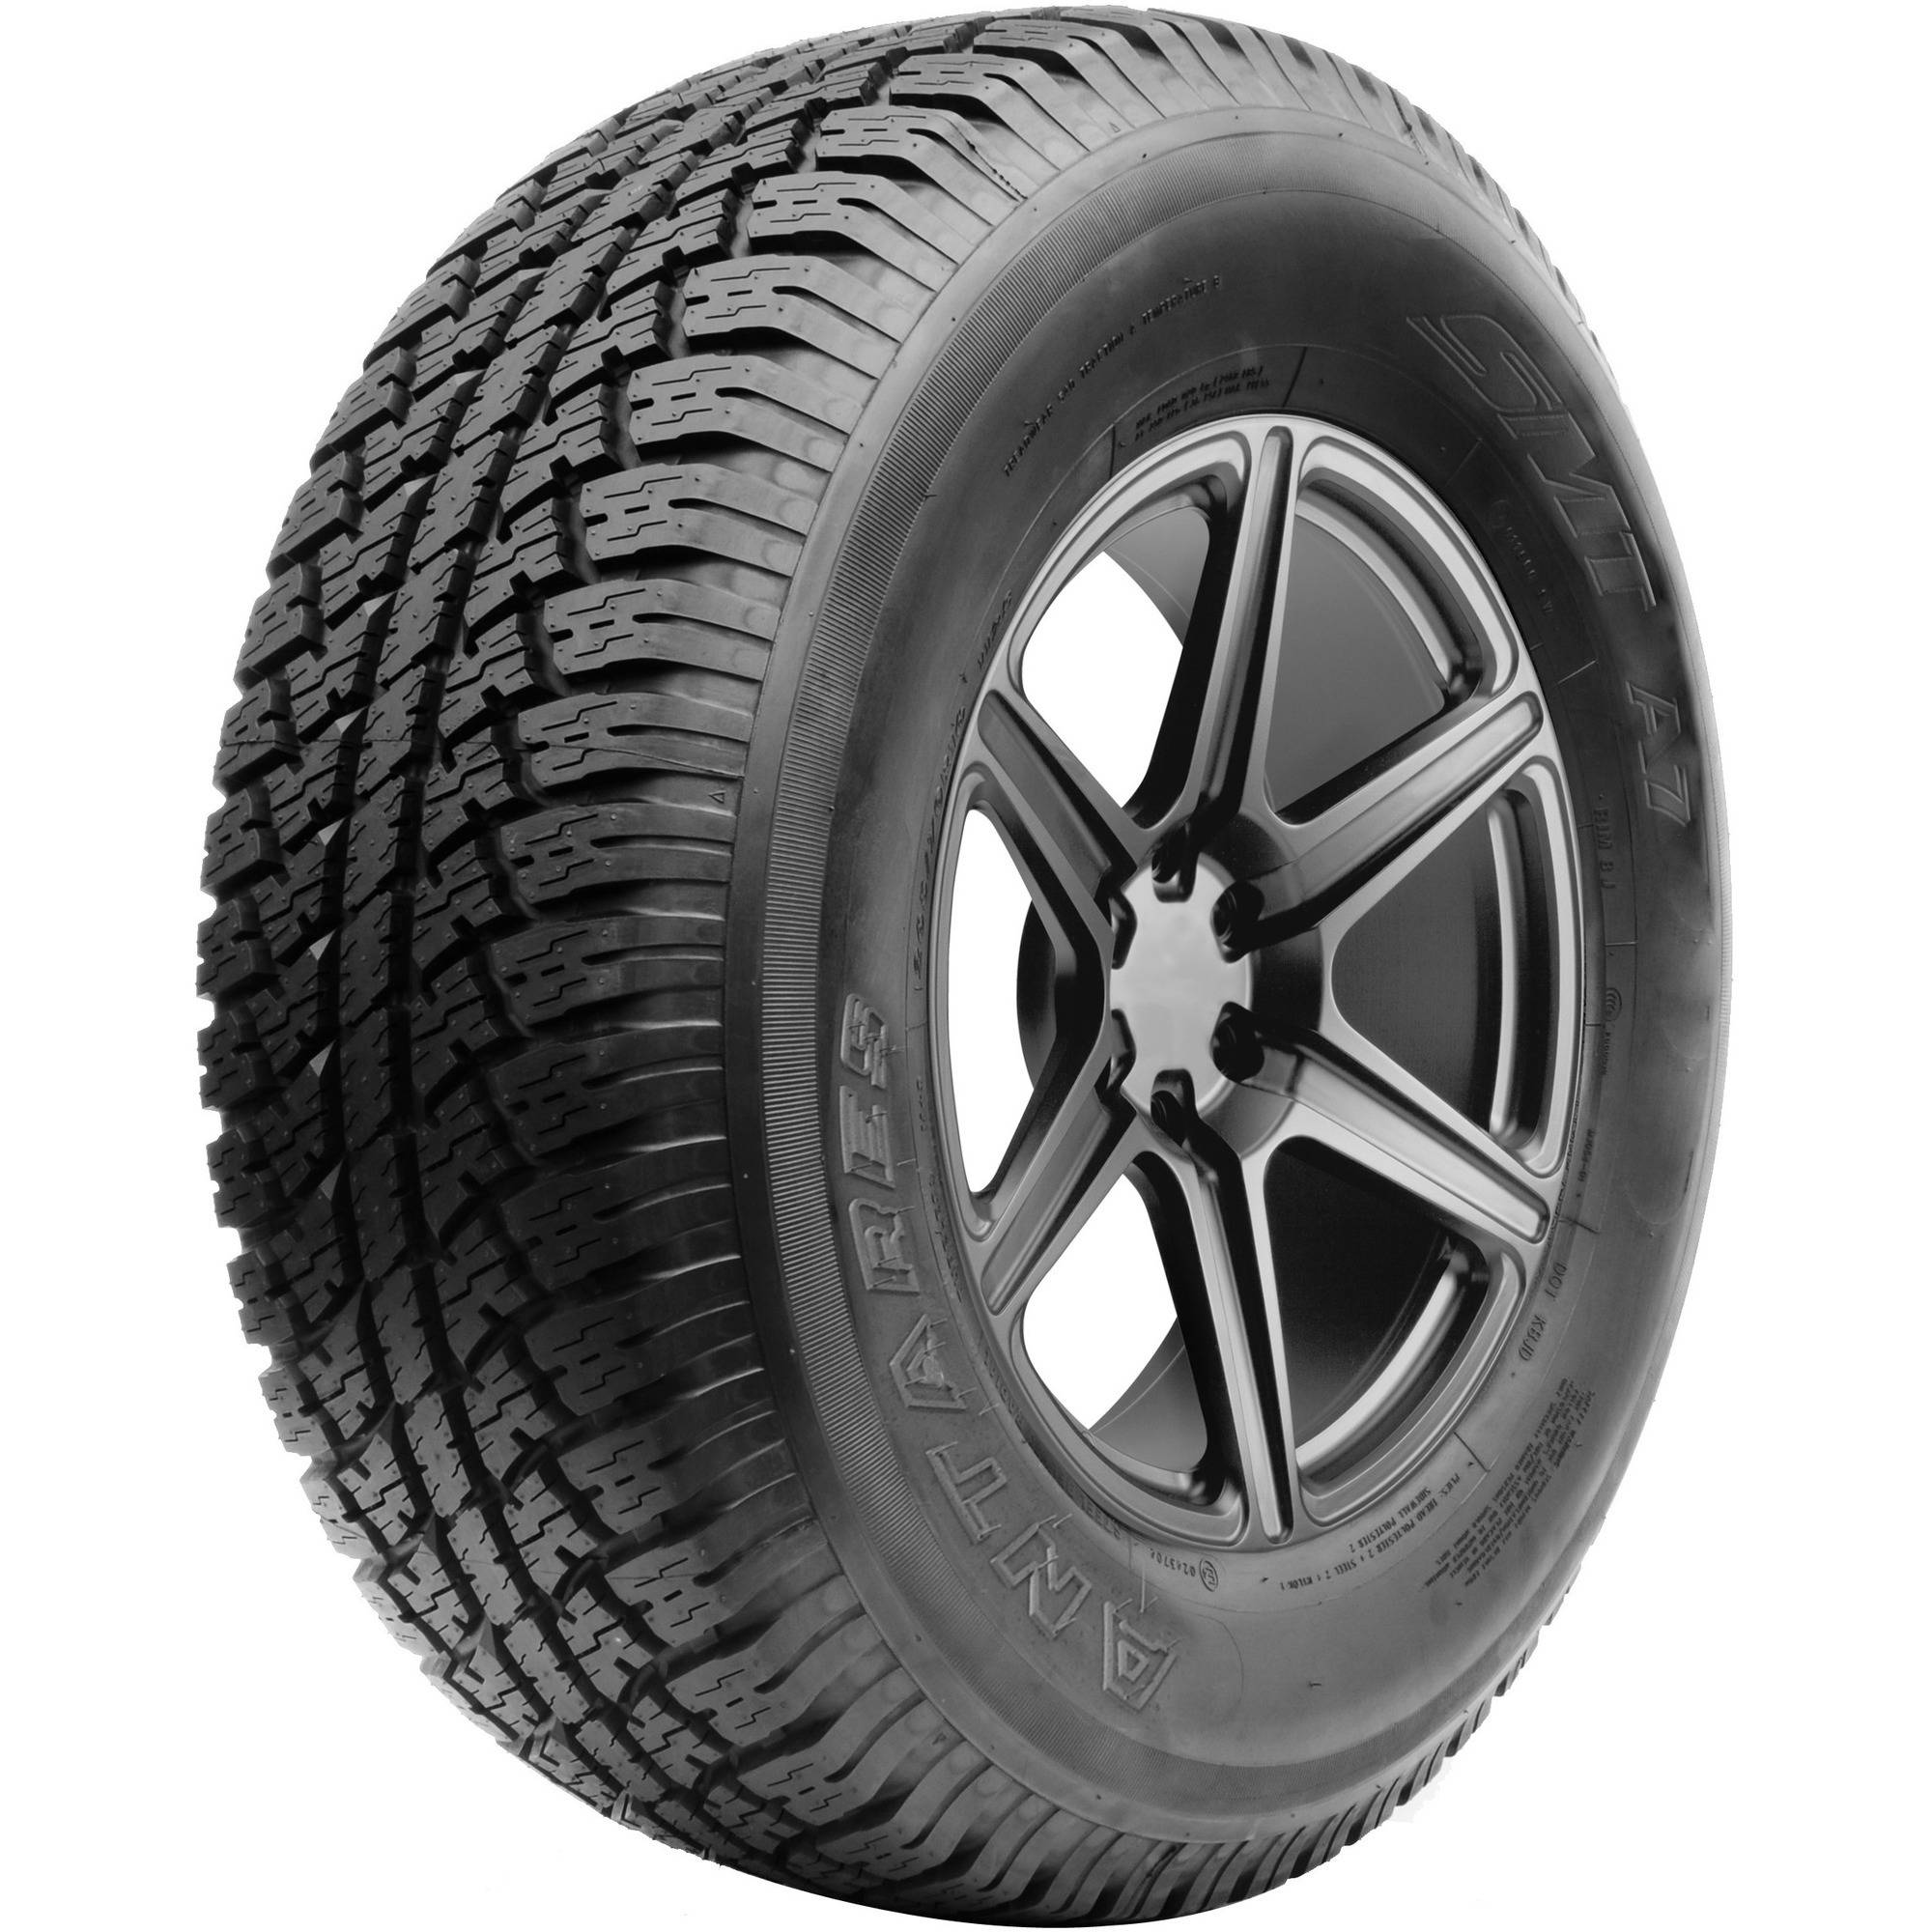 Antares SMT A7 All-Terrain Tire LT245 75R16 E 10 by Antares